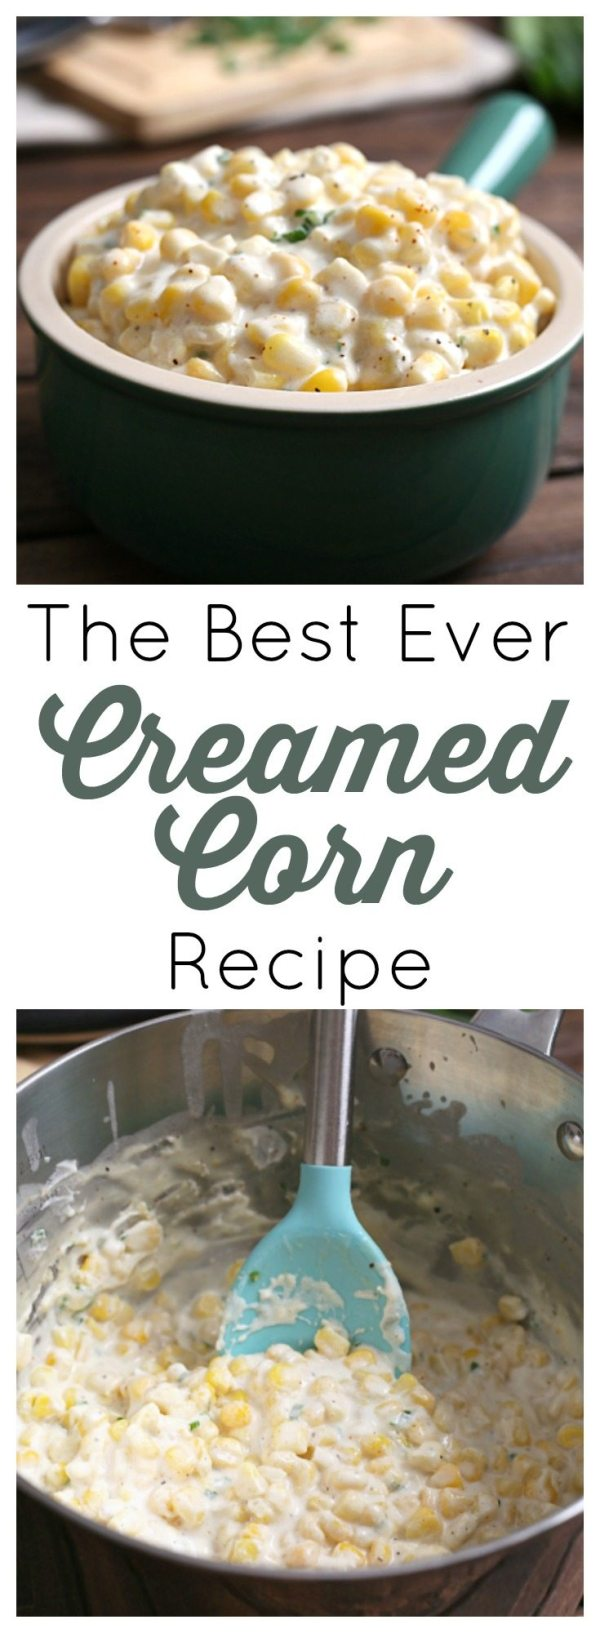 This recipe is the best creamed corn I've tried! Simple ingredients, a little bit of spice, and just a few minutes on the stovetop.